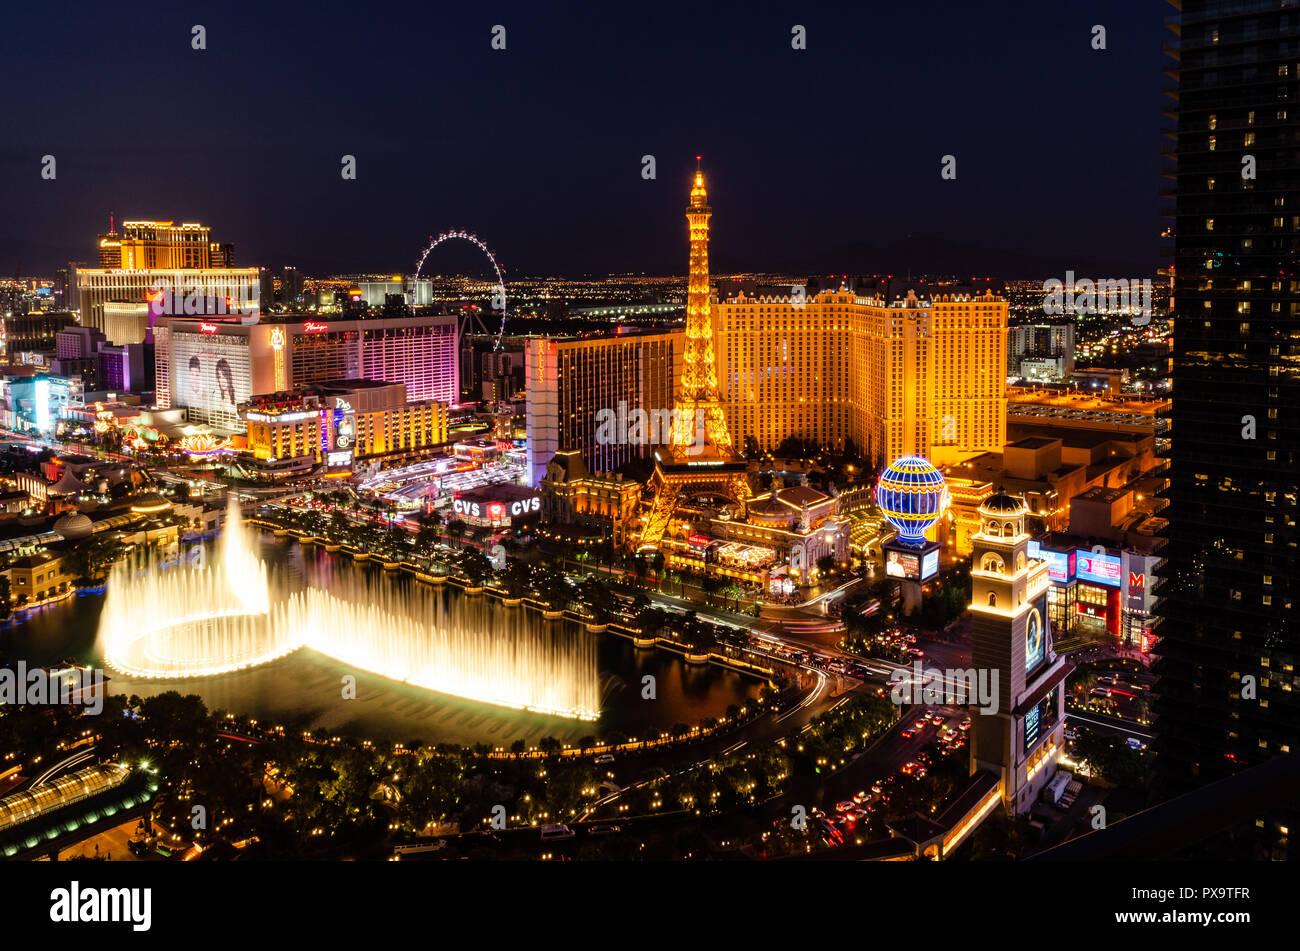 Long Exposure of the Bellagio Fountains and Las Vegas Strip at night Stock Photo